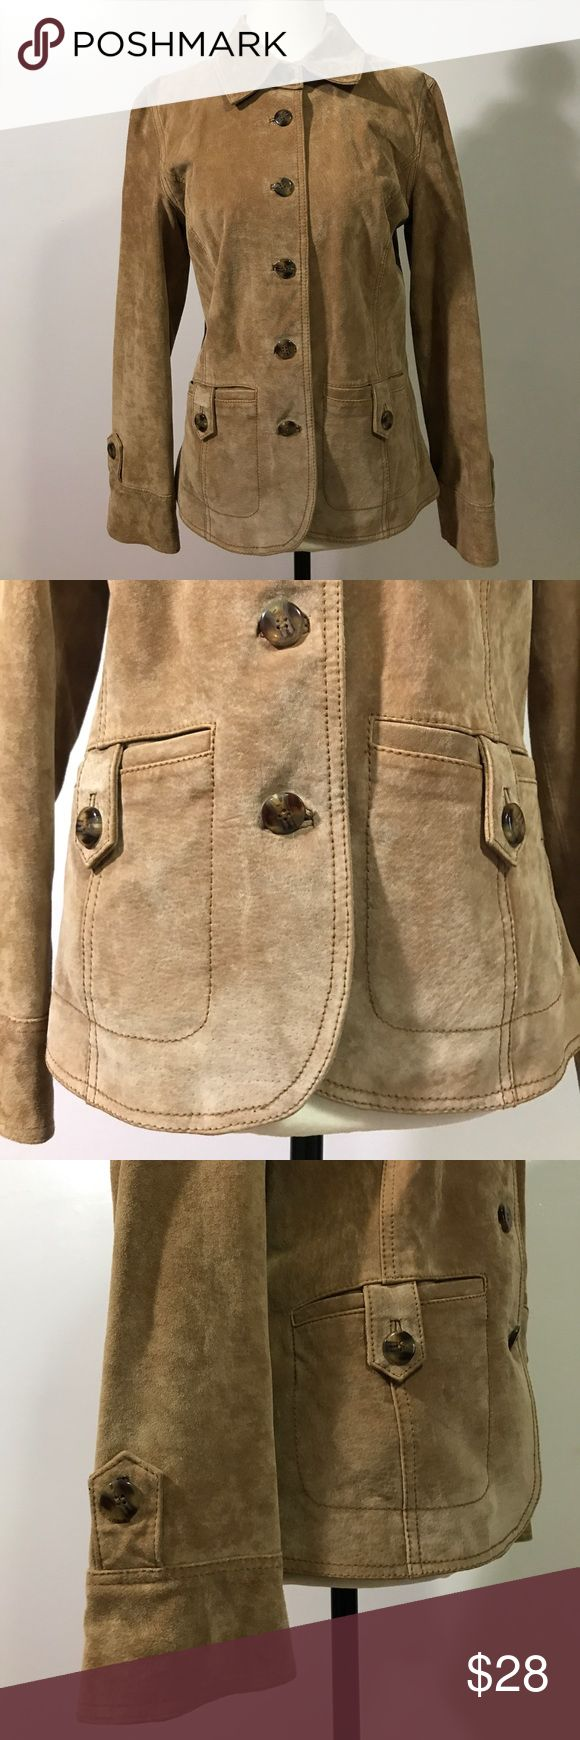 "I.E. Camel Leather Jacket- PM Gorgeous suede jacket in amazing condition! Nice neutral camel color.  Armpit to armpit- 18"". Length- 24"".💖💕 I.E Jackets & Coats Blazers"